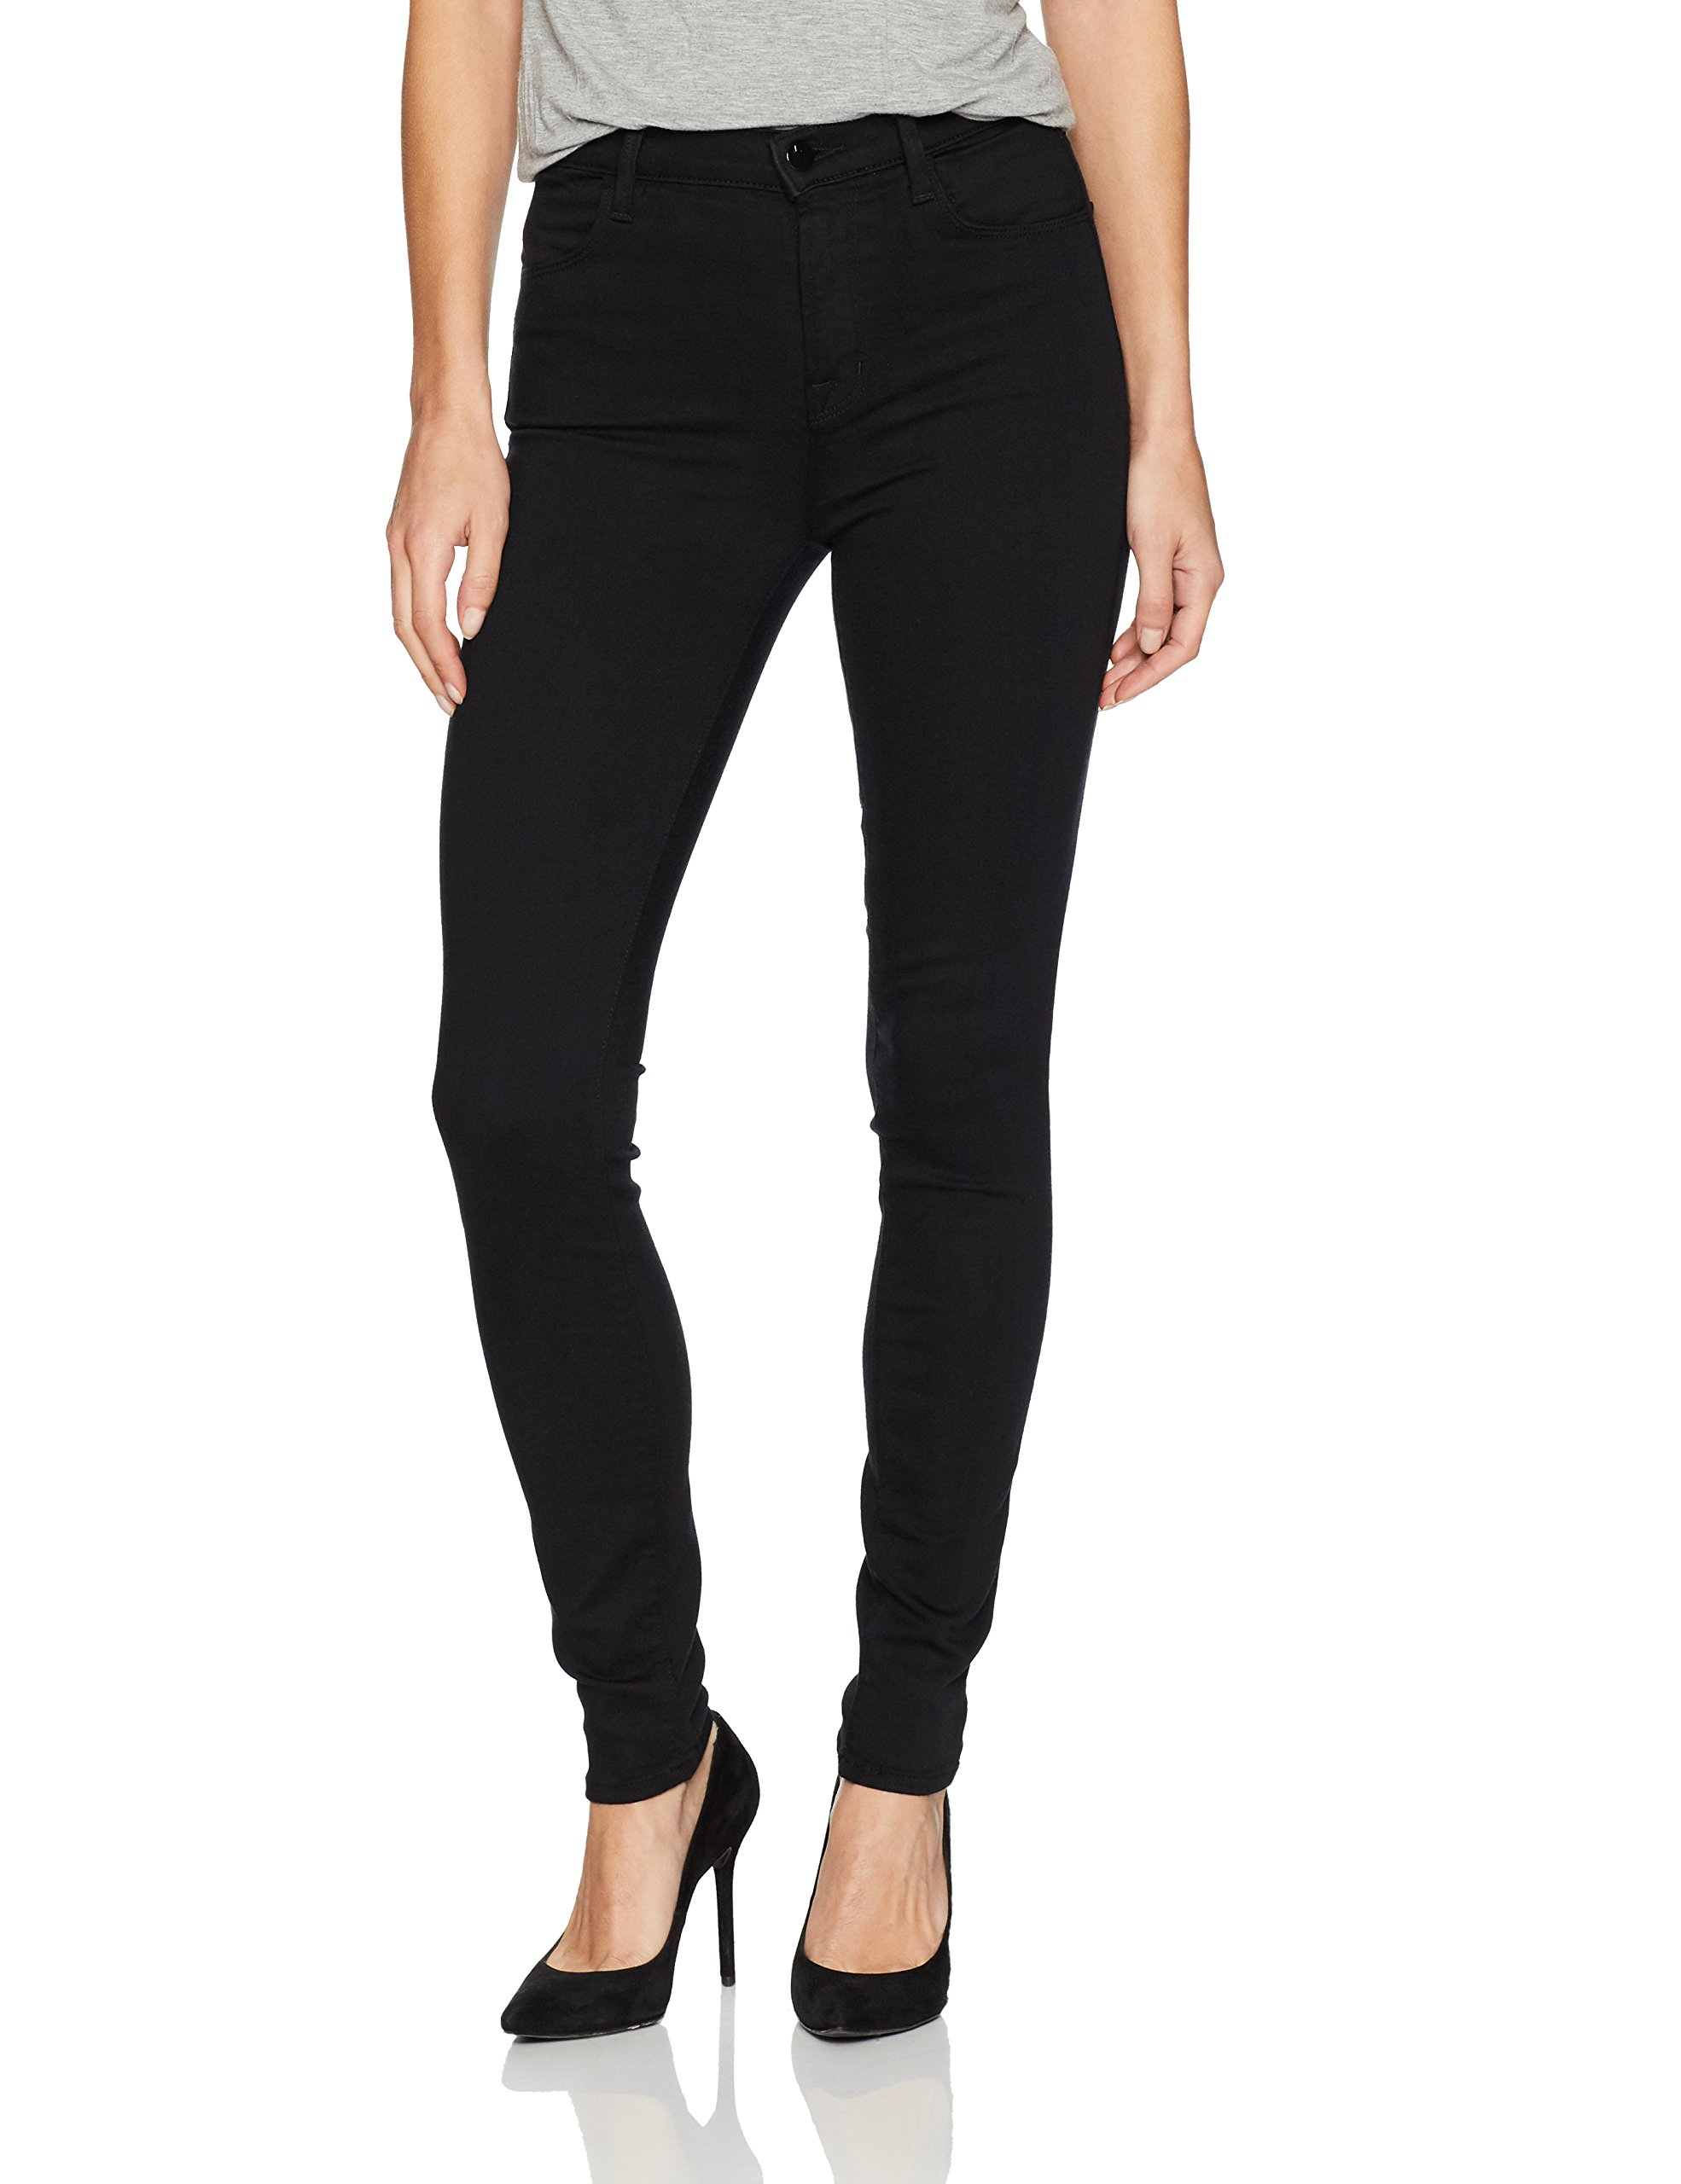 J Brand Jeans Women's 23110 Maria High Rise Skinny Jean, Seriously Black, 28